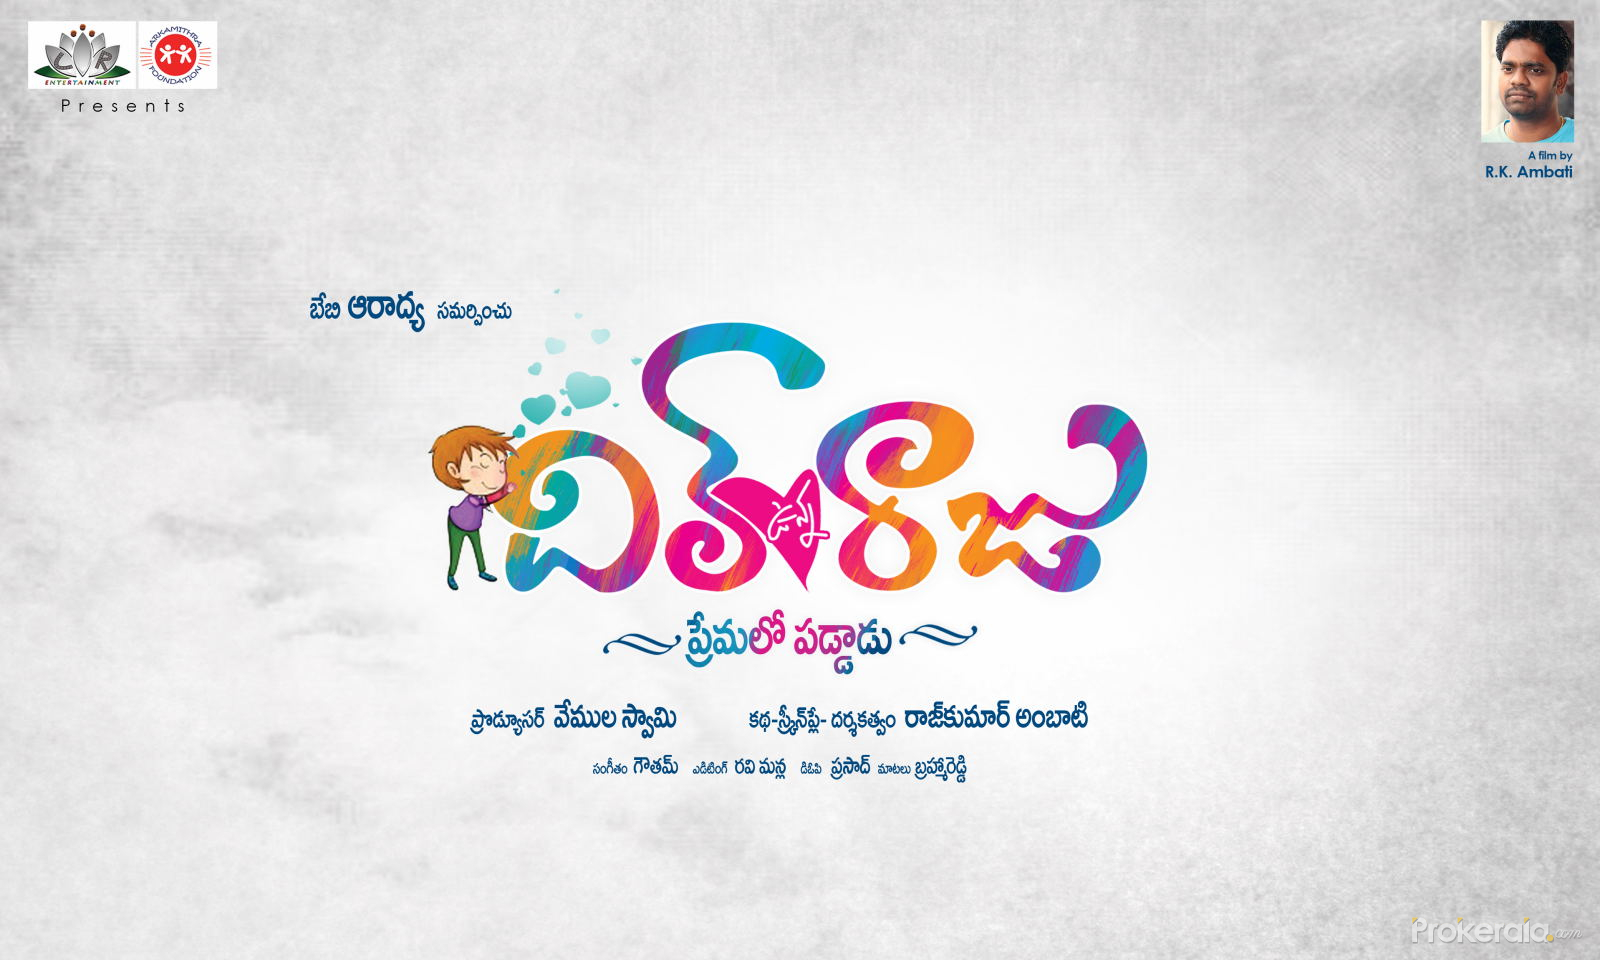 Amazing Wallpaper Logo Raju - dil-unna-raju-movie-poster-47827  Pic_87089.jpg